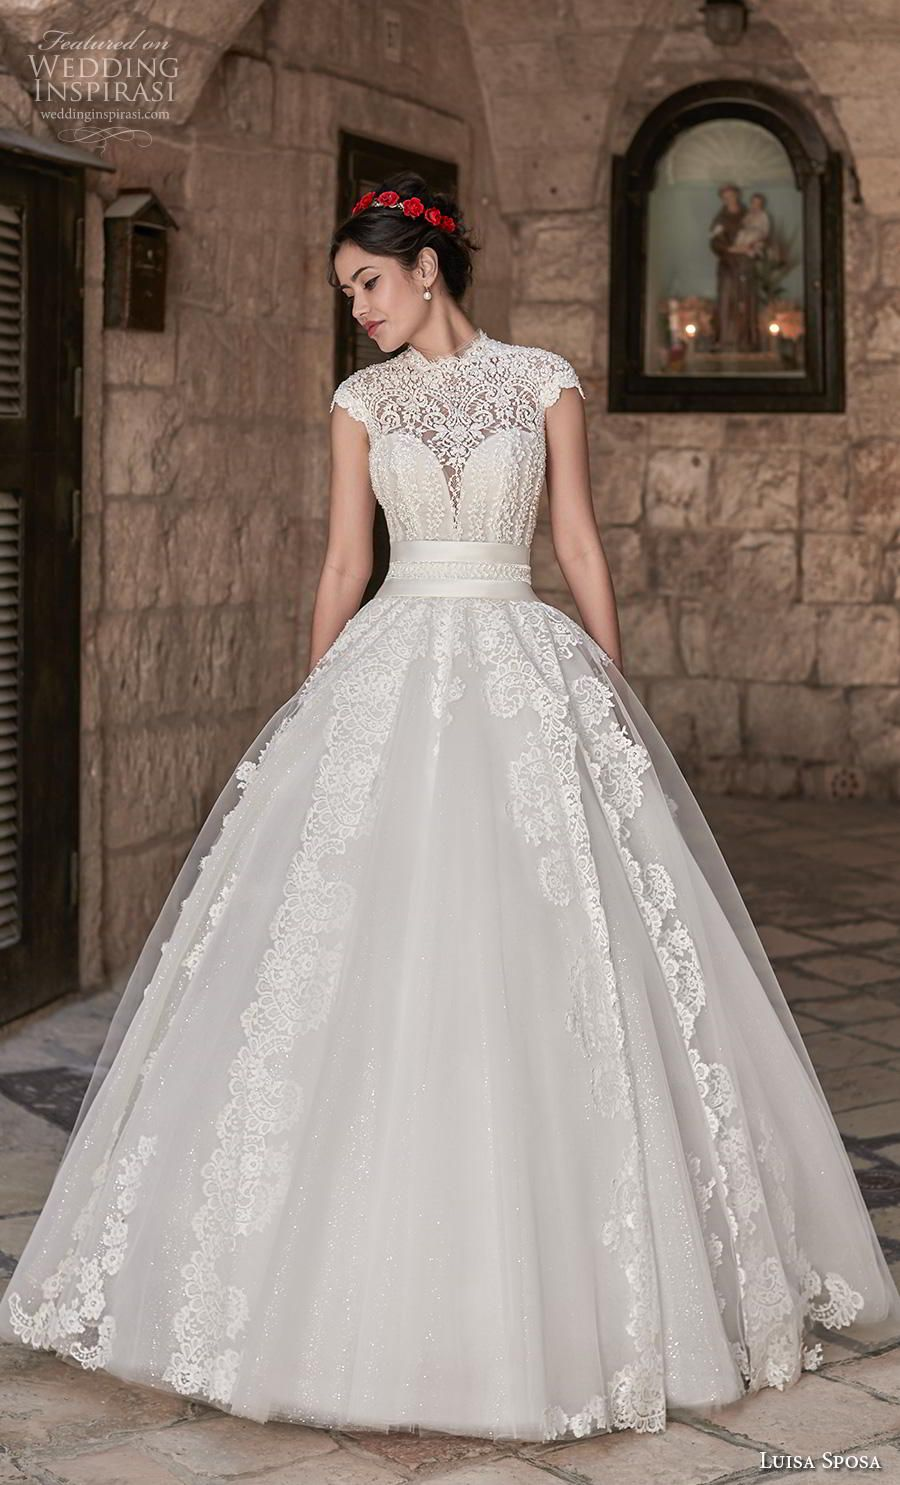 Luisa Sposa 2020 Wedding Dresses in 2020 Wedding dresses